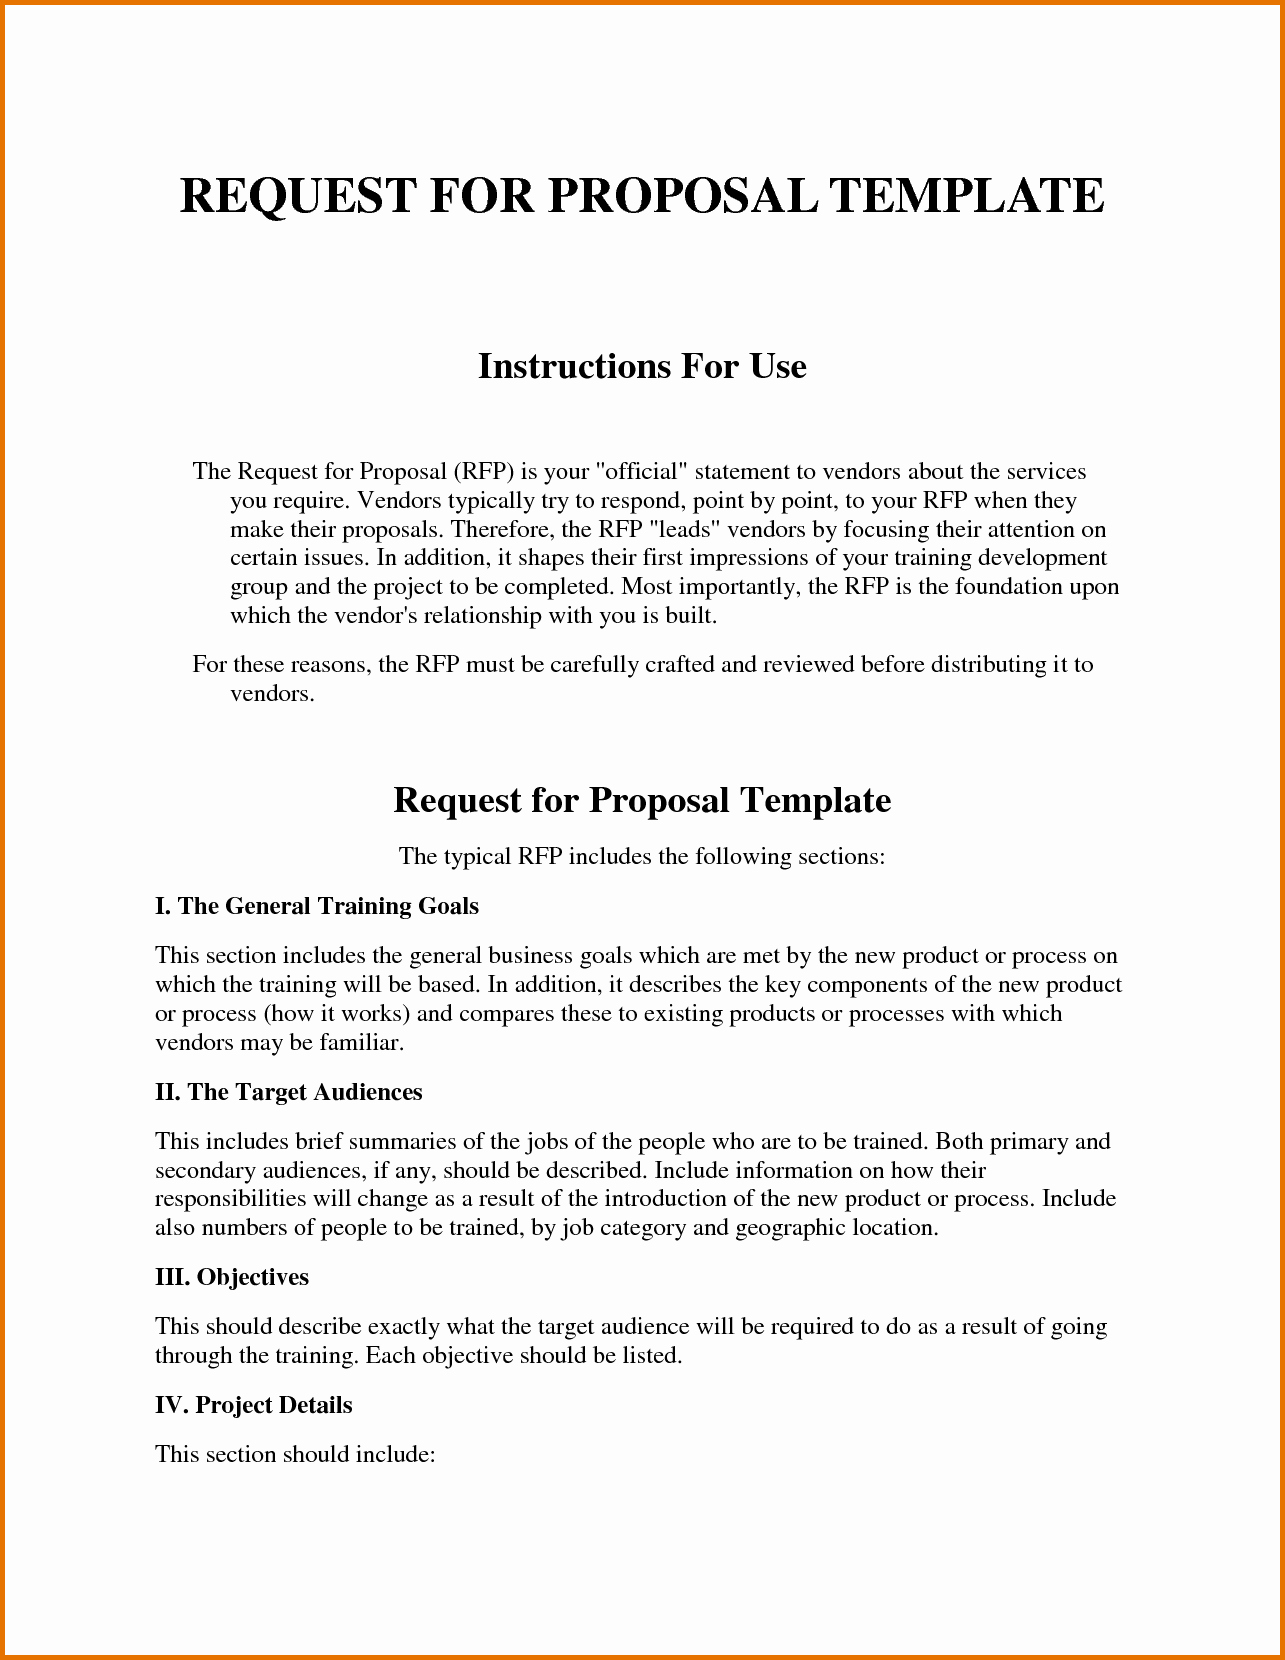 Request for Proposal Template Word Inspirational Request for Proposal Template Wordreference Letters Words